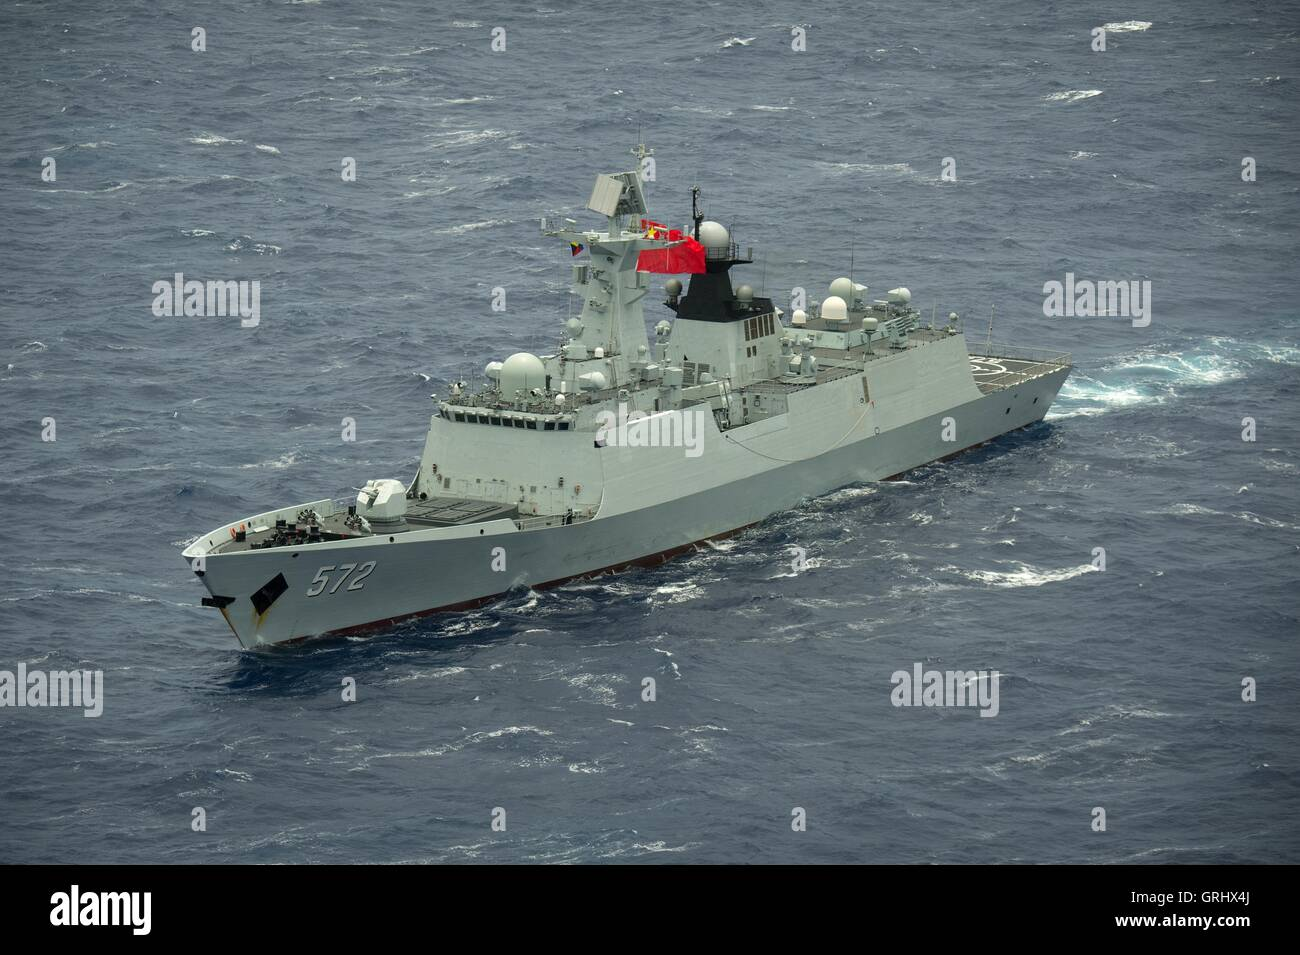 Chinese Navy multi-role frigate Hengshui steams in close formation during Rim of the Pacific exercises July 28, - Stock Image